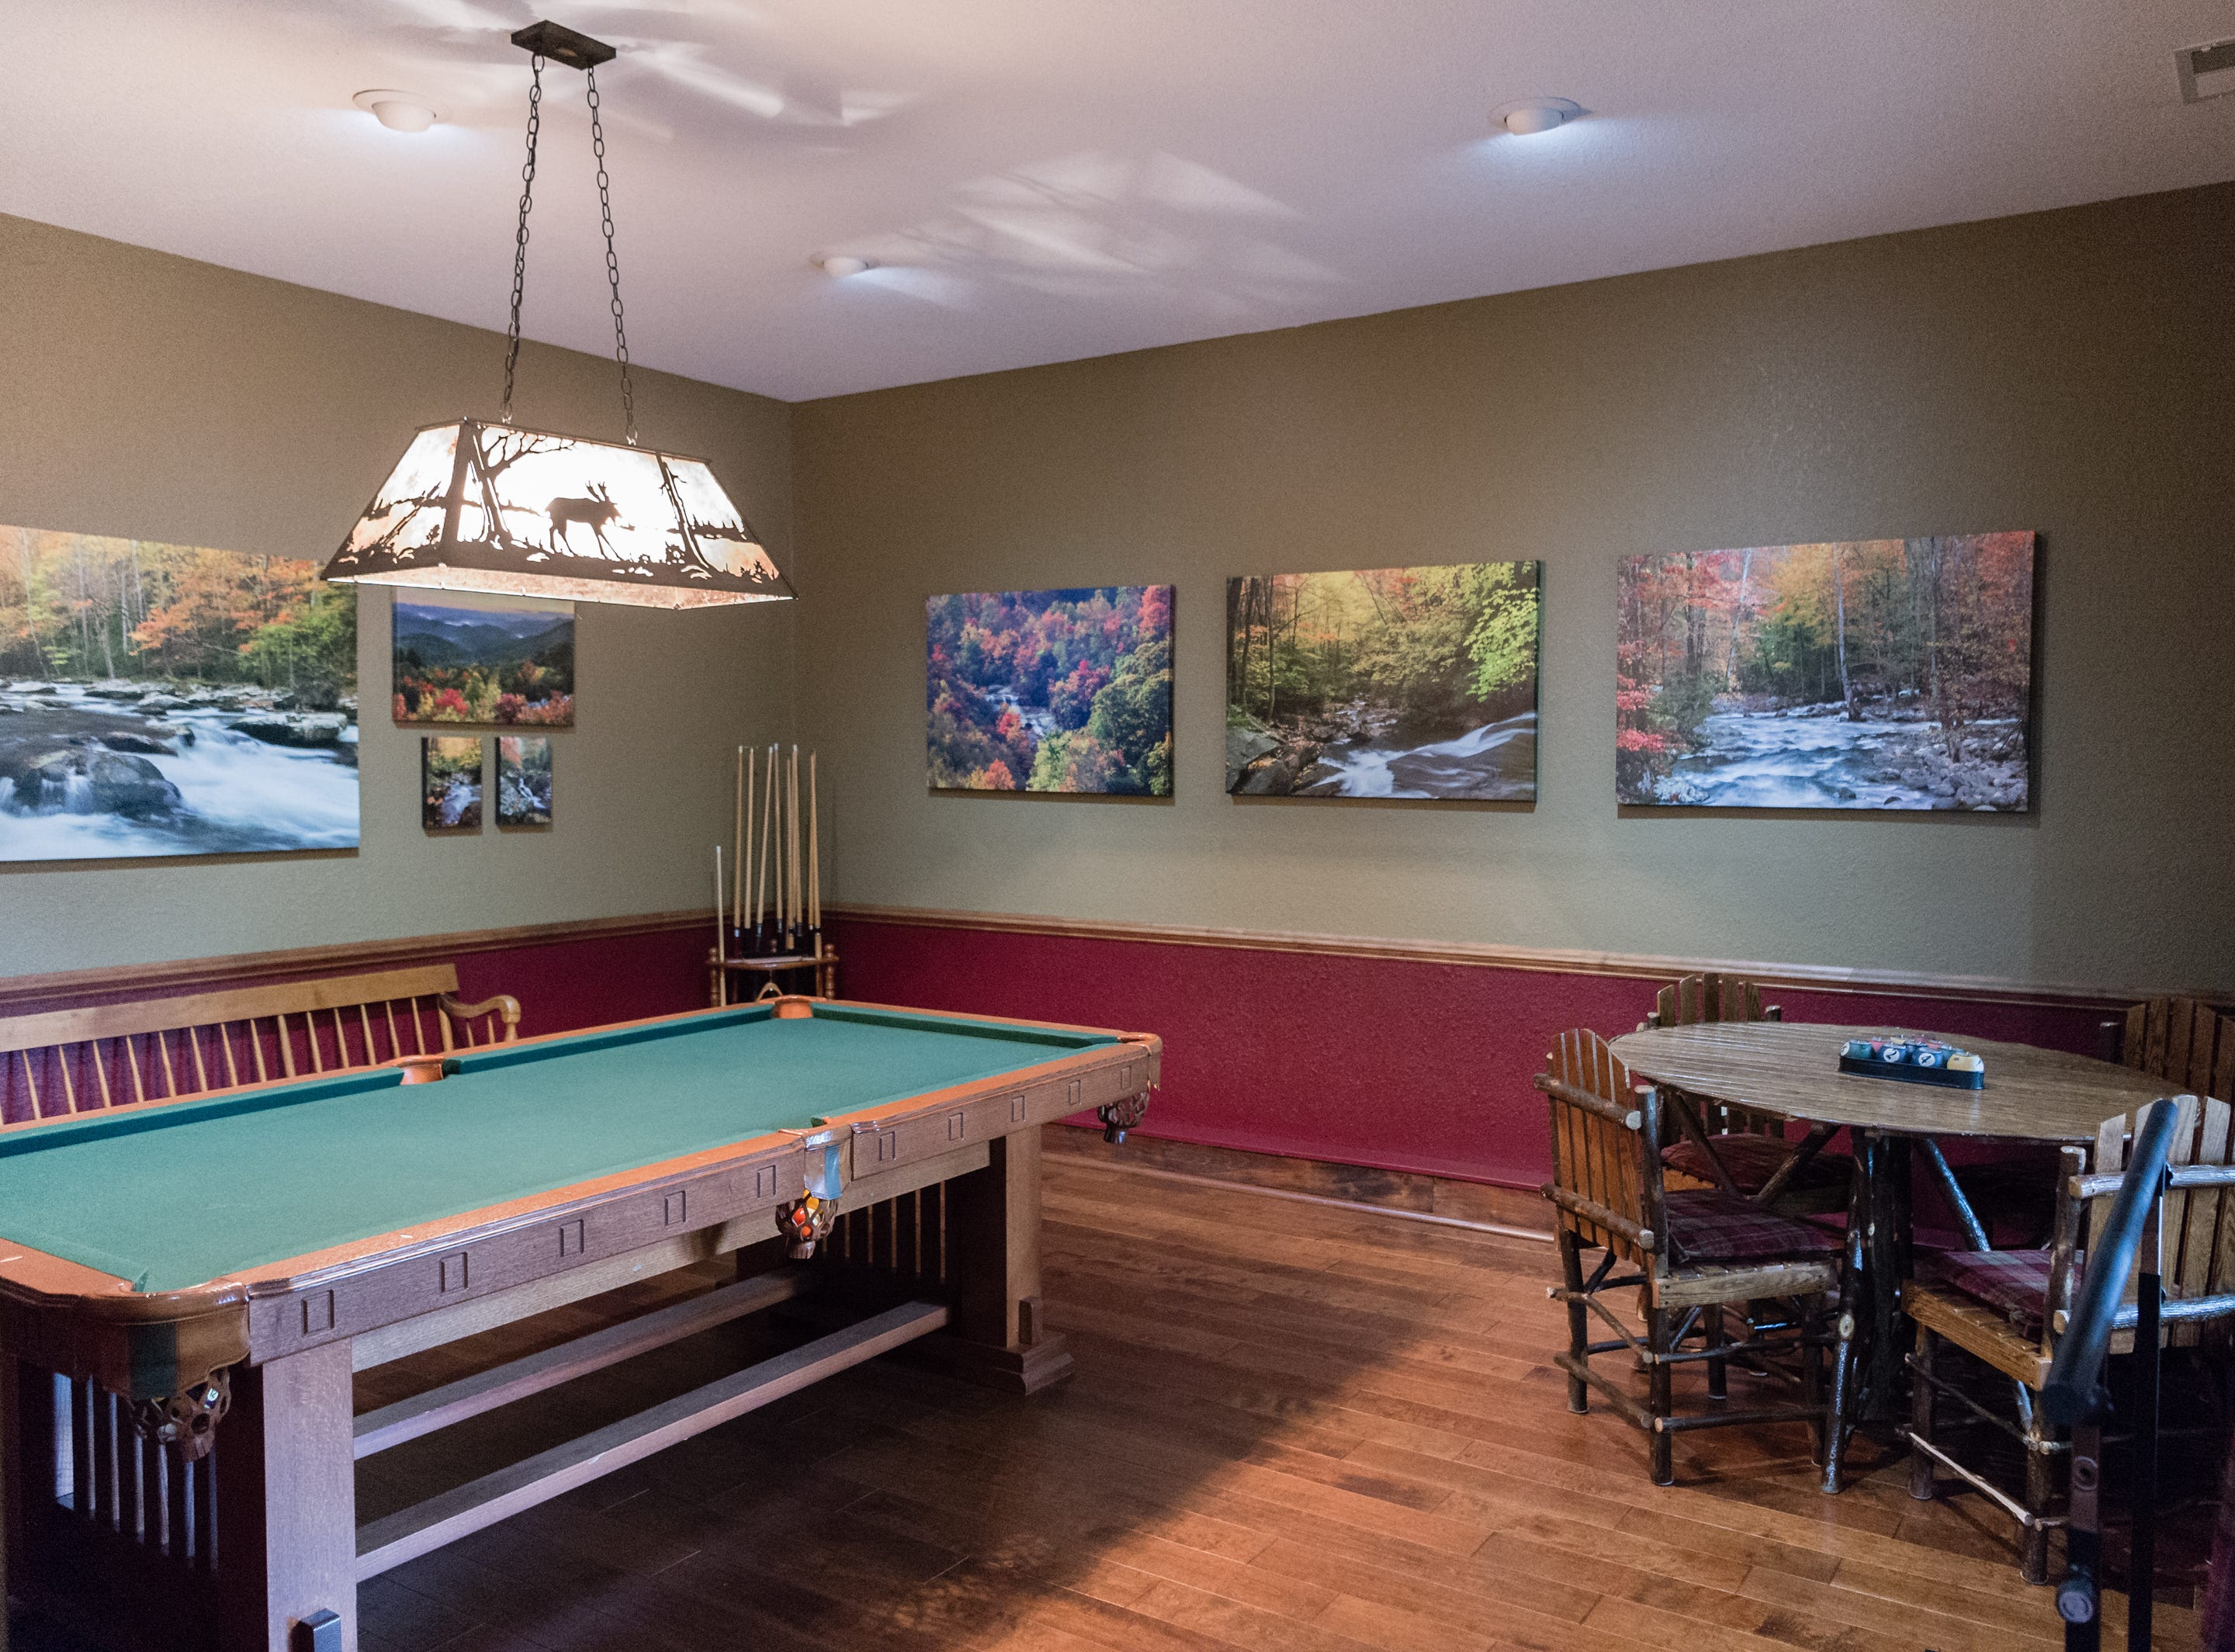 A game room on the basement level of Dan and Belle Fangmeyer's log cabin in Waynesville.